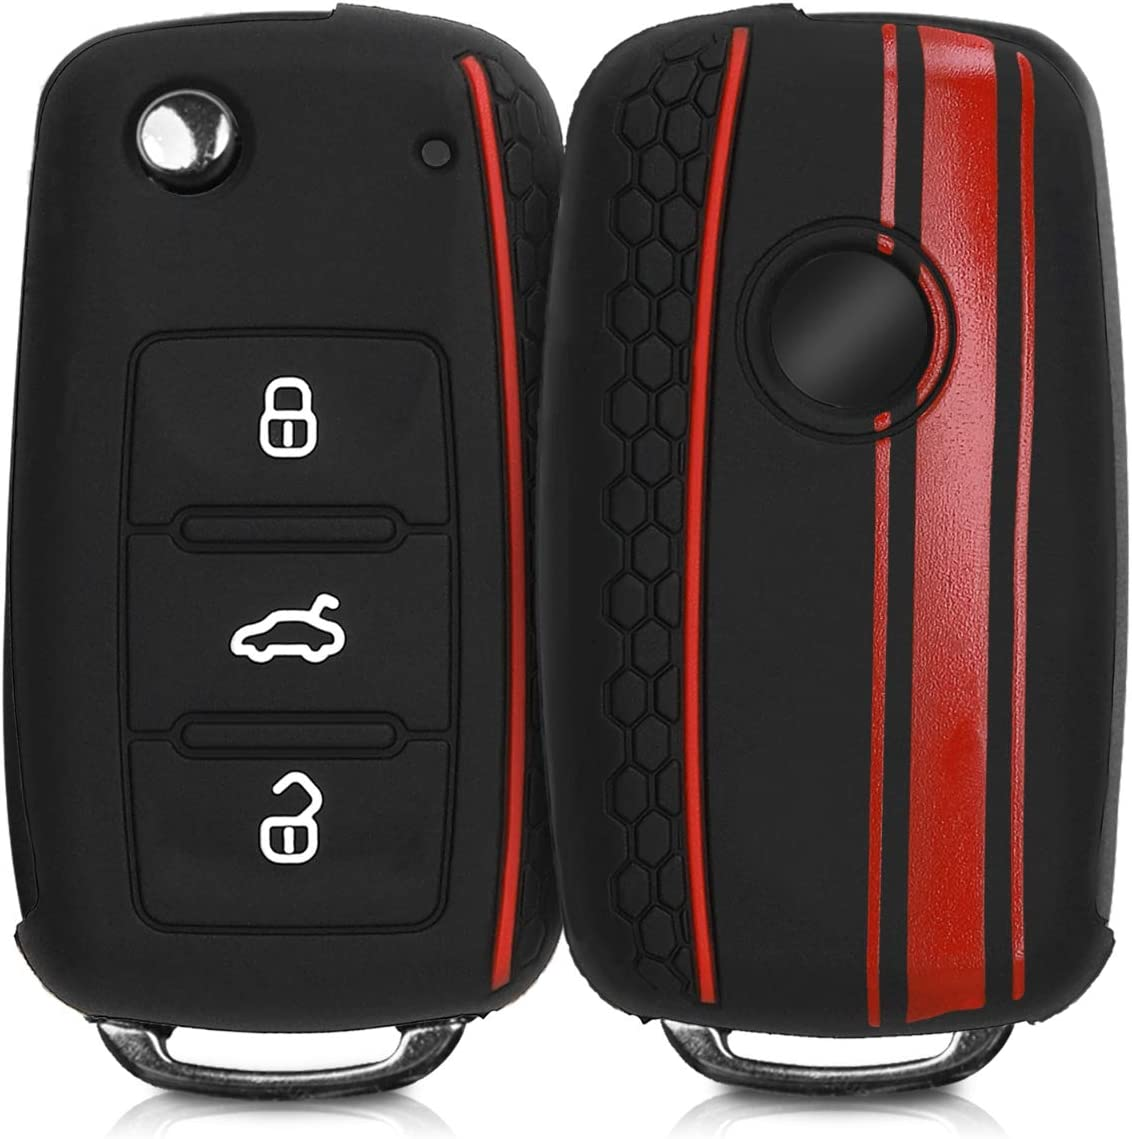 kwmobile Car Key Cover for VW Skoda Seat Rally Stripe Red//Black//Red Silicone Protective Key Fob Cover for VW Skoda SEAT 3 Button Car Key